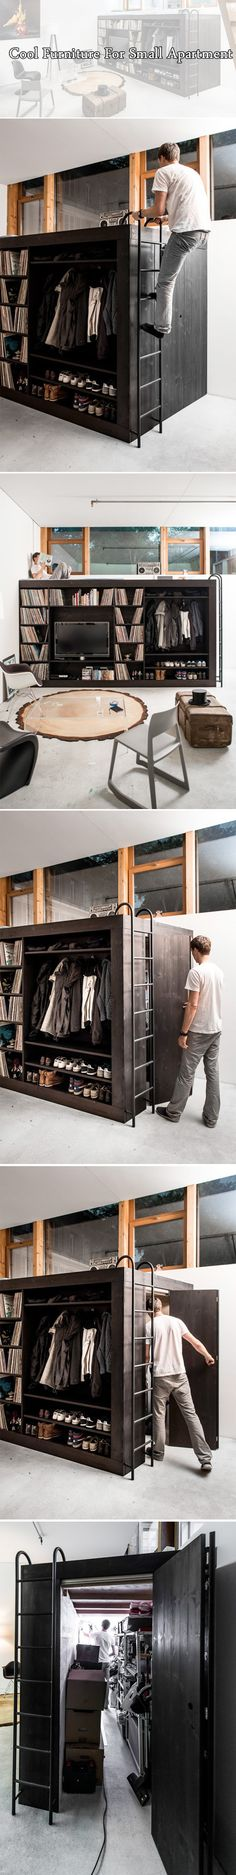 "Modern space-saving bed with integrated bookshelves, entertainment center, walk-in closet, and storage compartments. ""The Living Cube"" was designed and constructed by Till Koenneker."